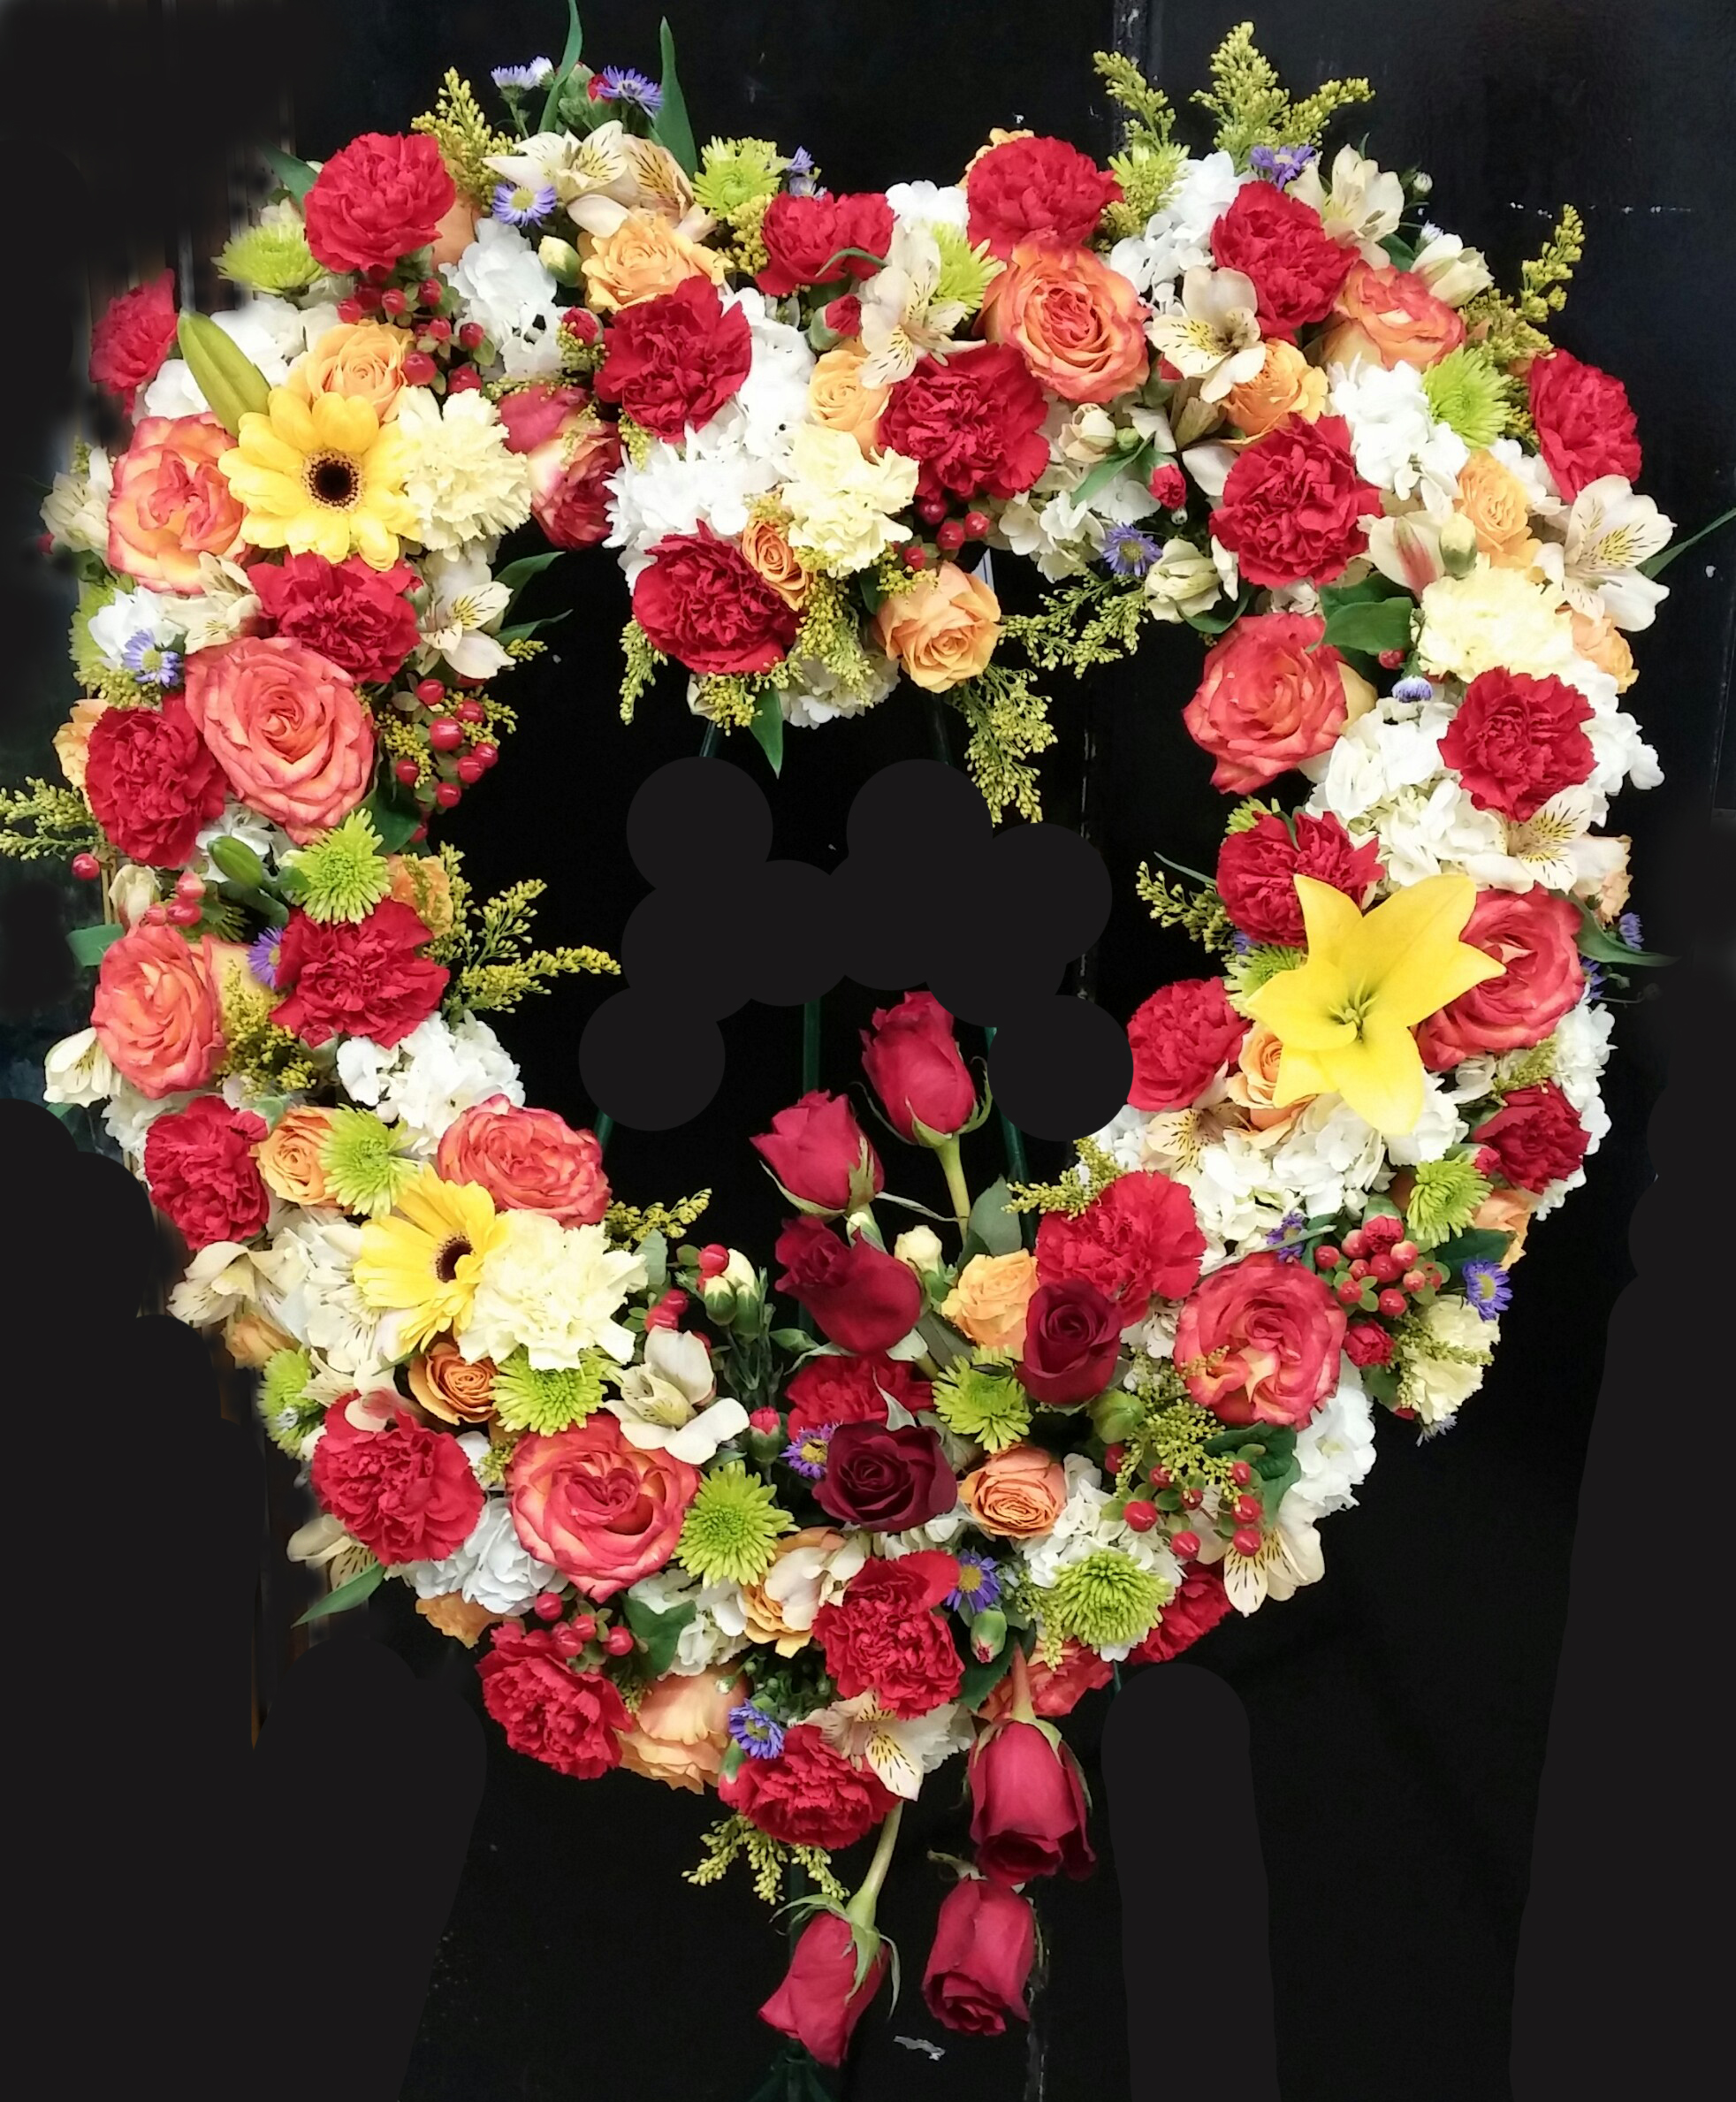 Mixed Heart Wreath